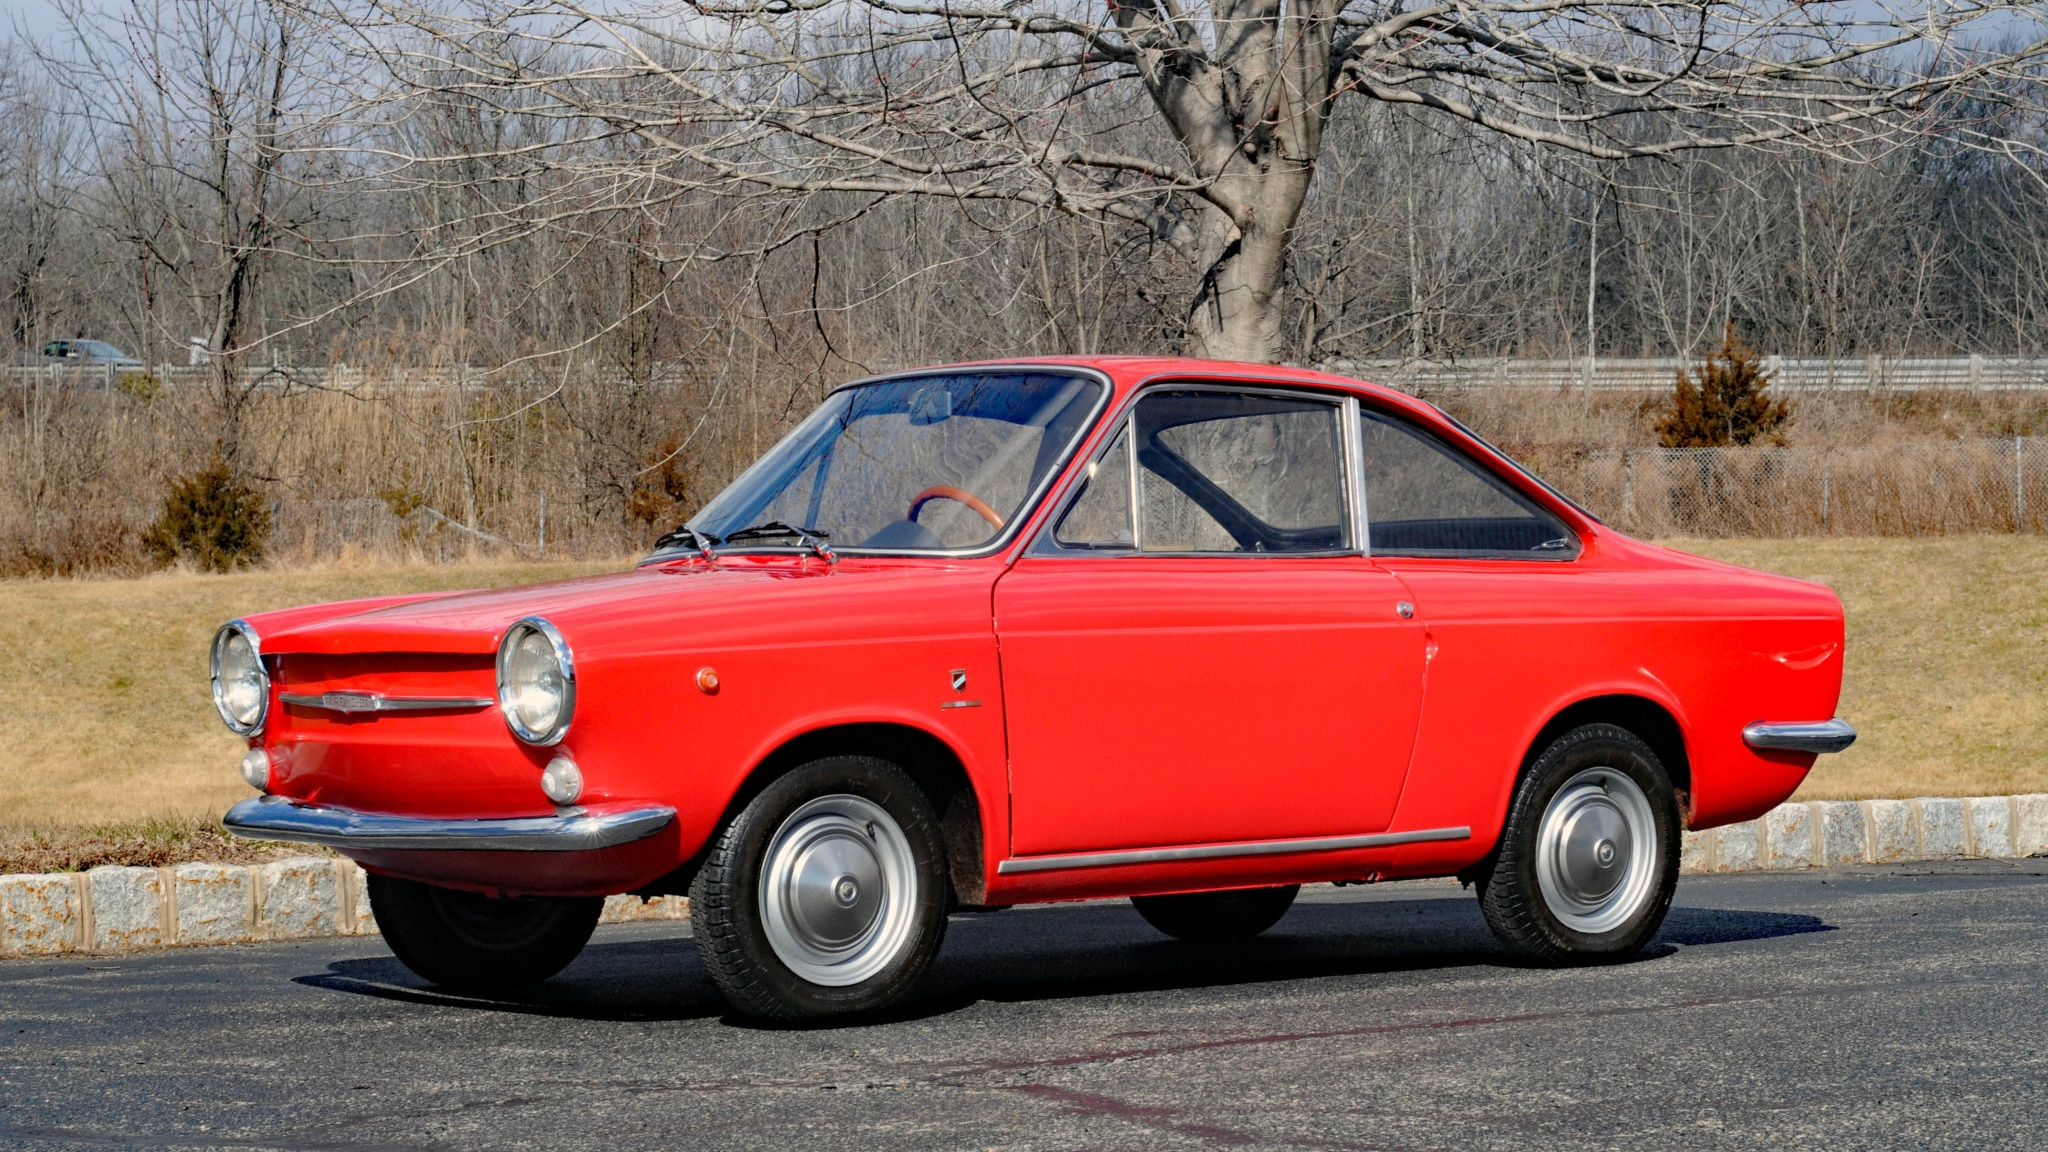 Fiat Moretti 500 Sells for $10,500 at Bring a Trailer: Weekly Auction Roundup